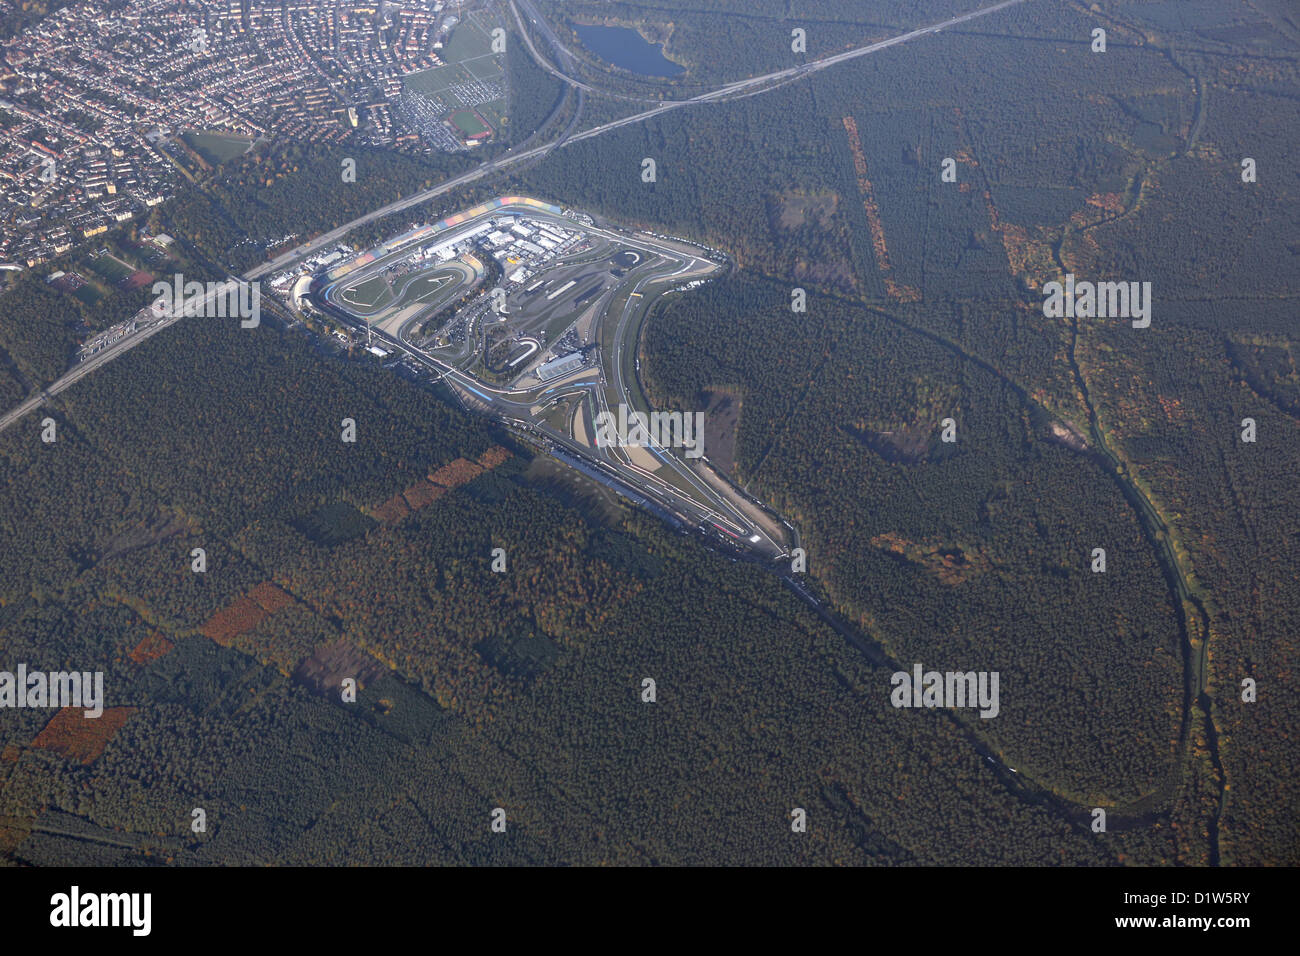 Hockenheim, Germany, aerial view of motorsport race track Hockenheimring - Stock Image